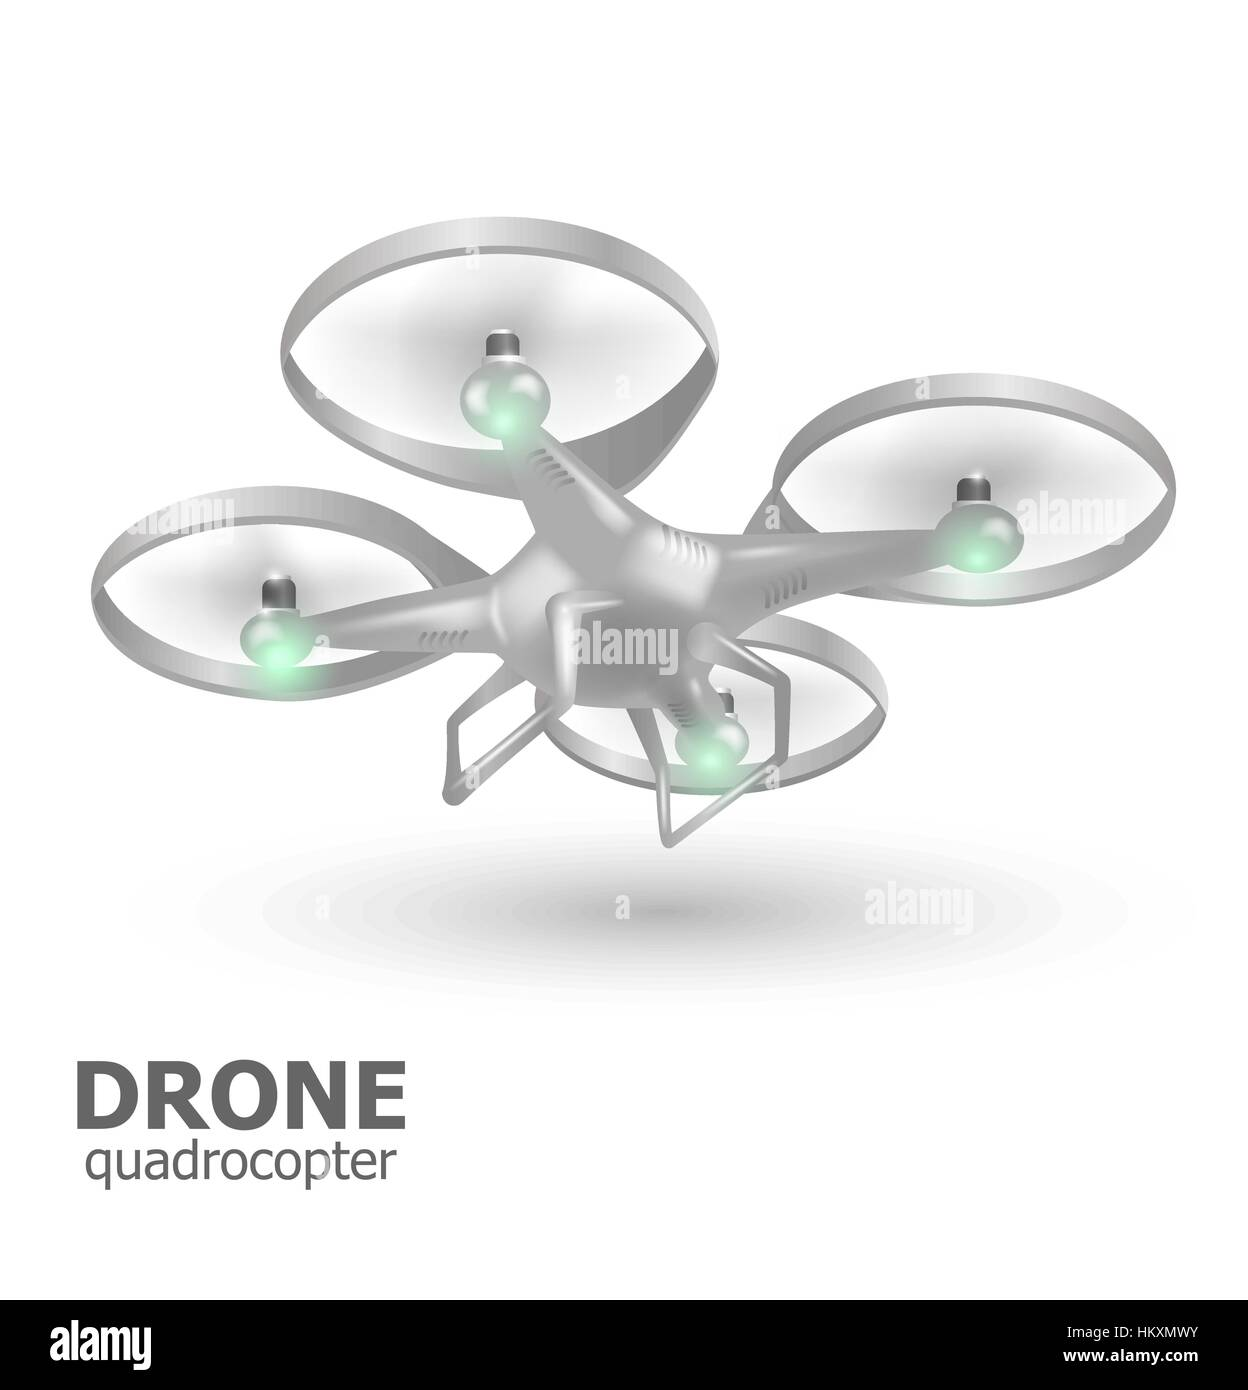 flying drone quadrocopter logo template. Vector illustration - Stock Image